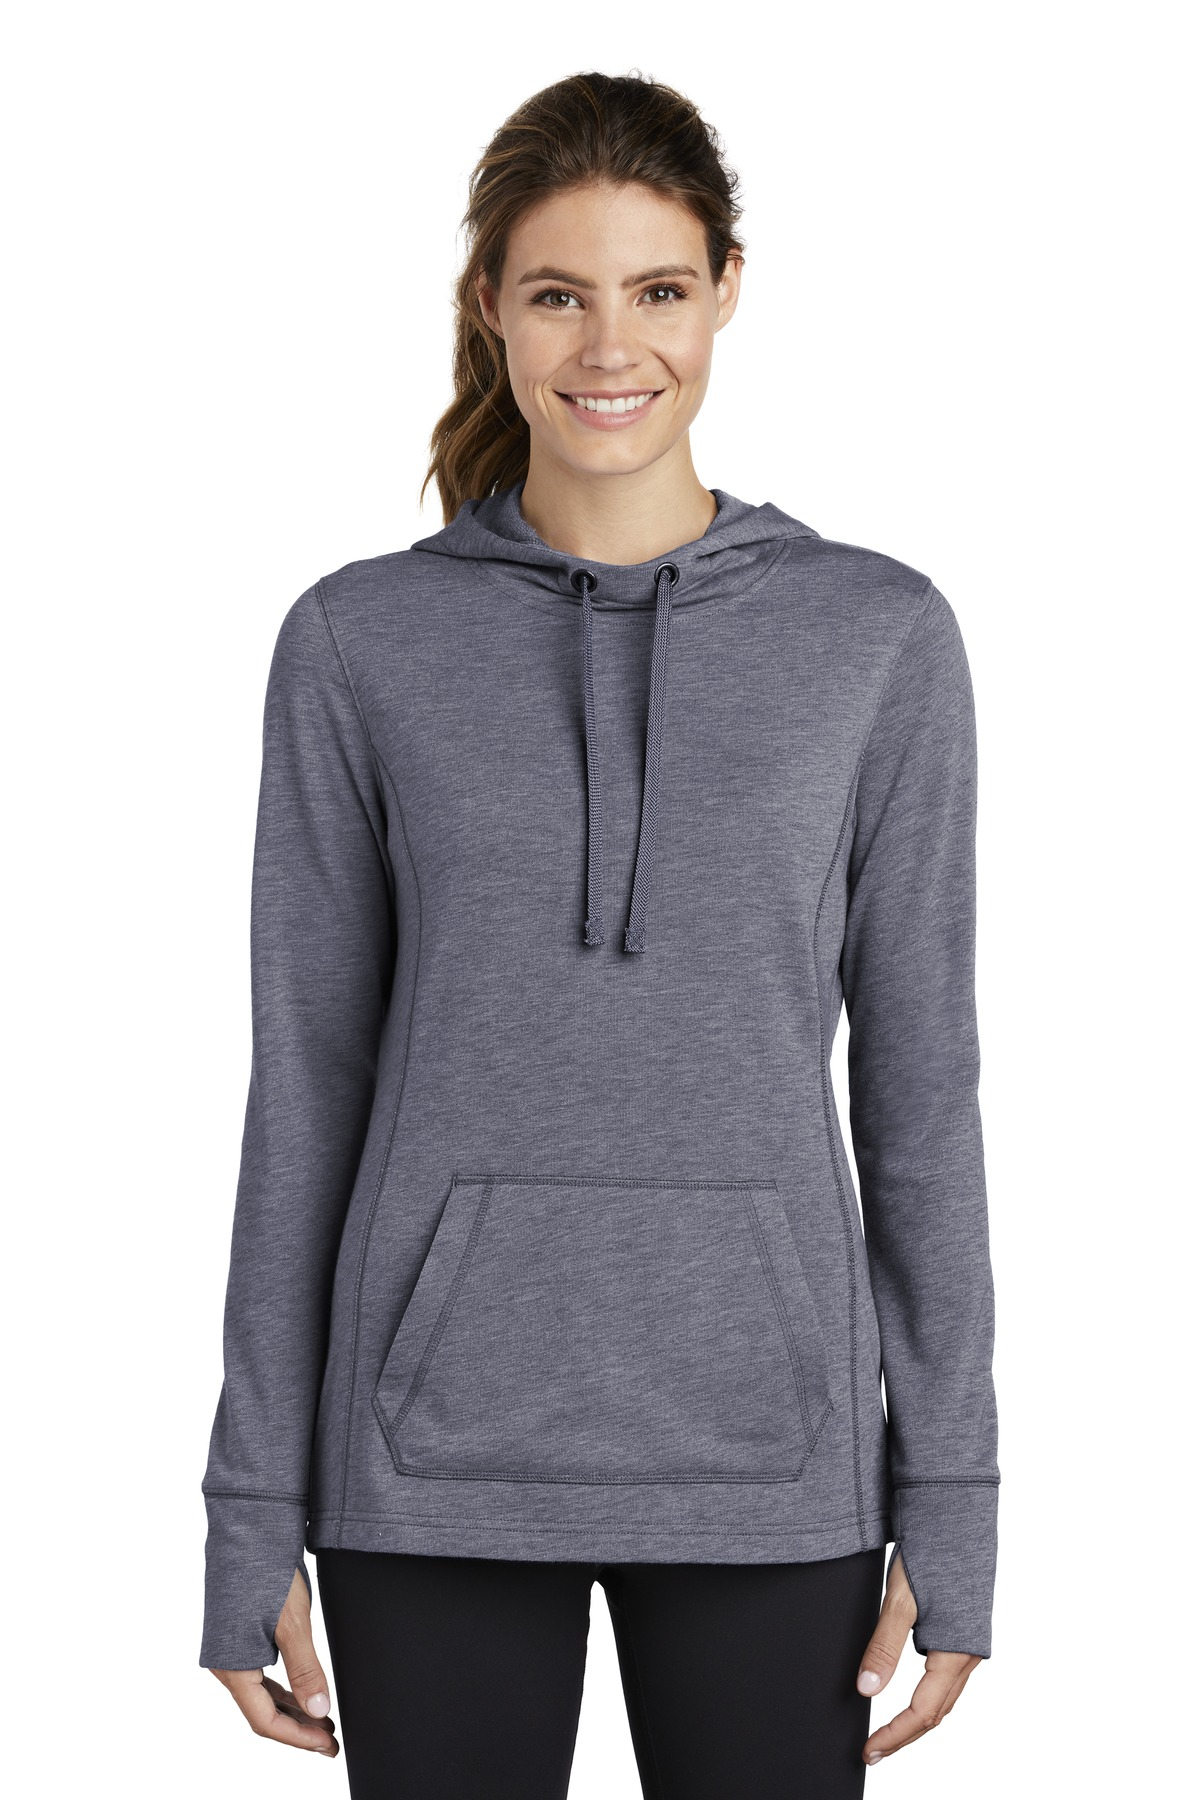 Sport-Tek  ®  Ladies PosiCharge  ®  Tri-Blend Wicking Fleece Hooded Pullover. LST296 - True Navy Heather